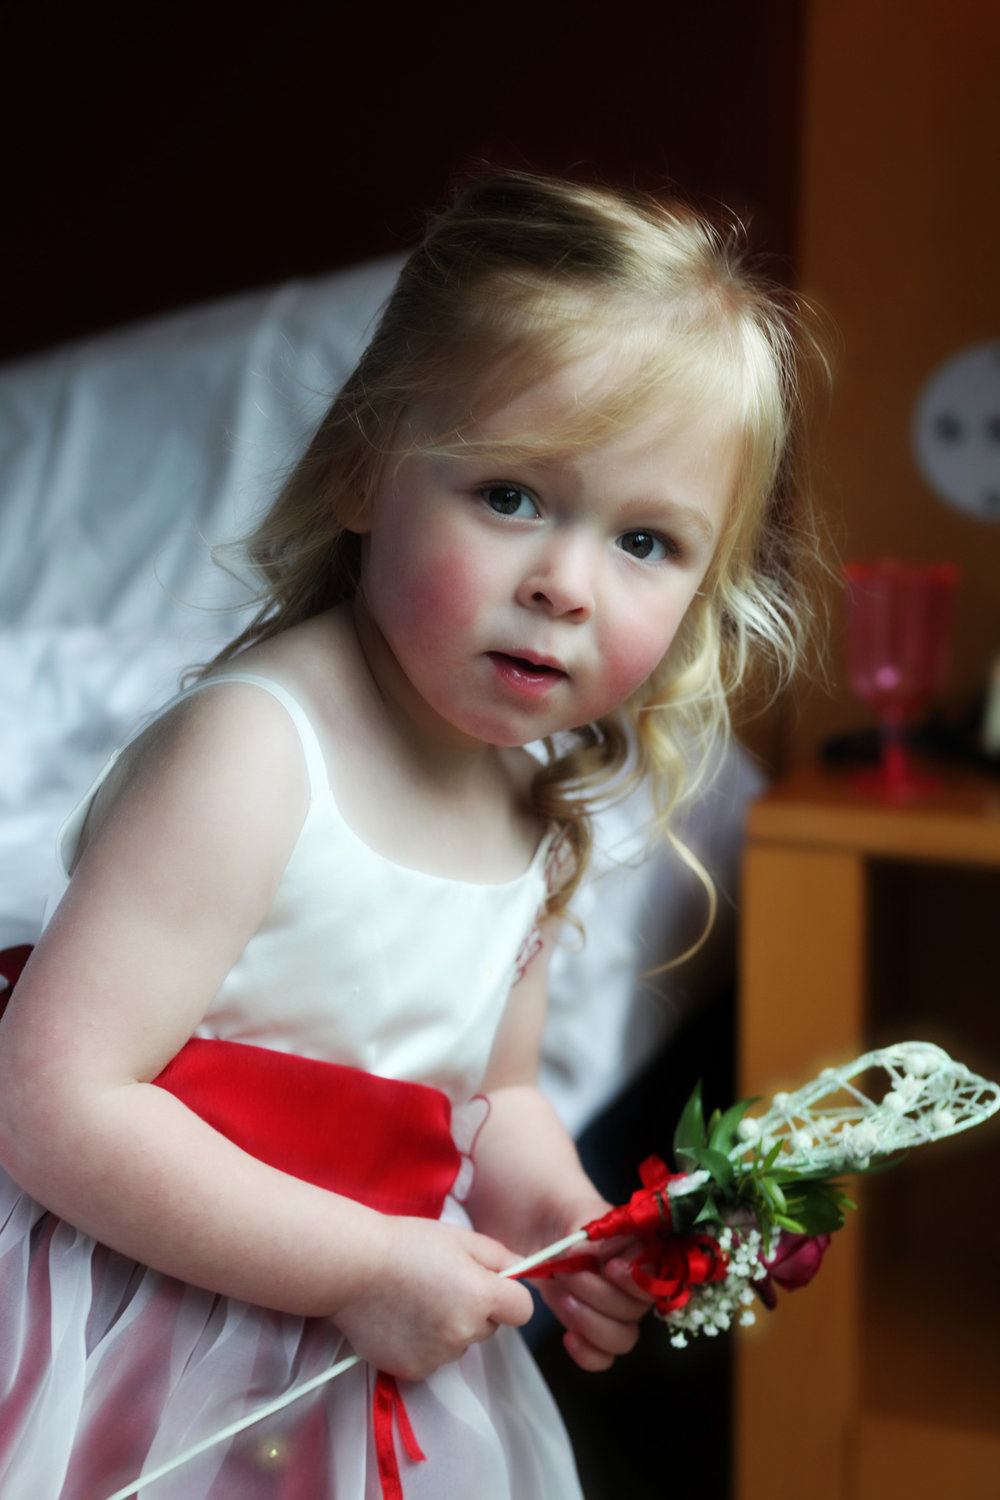 Cute_Flower_Girl_Edinburgh wedding photography.jpg